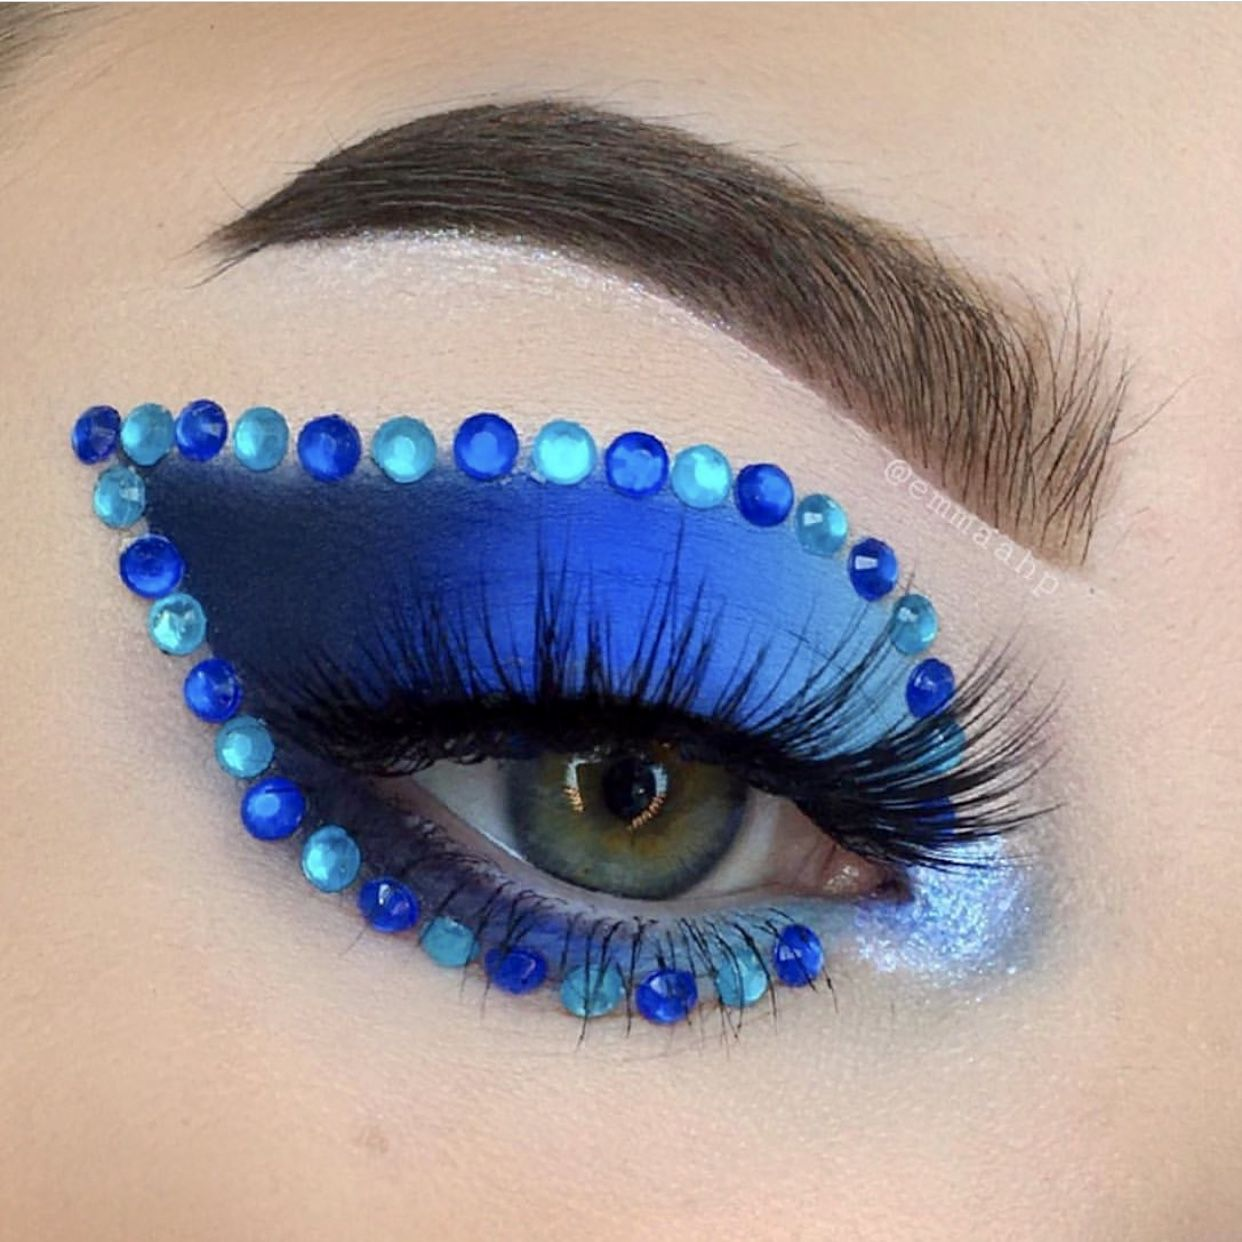 Pin by Eleanor Hayes on BEAUTY // GLAMOUR 1 in 2020